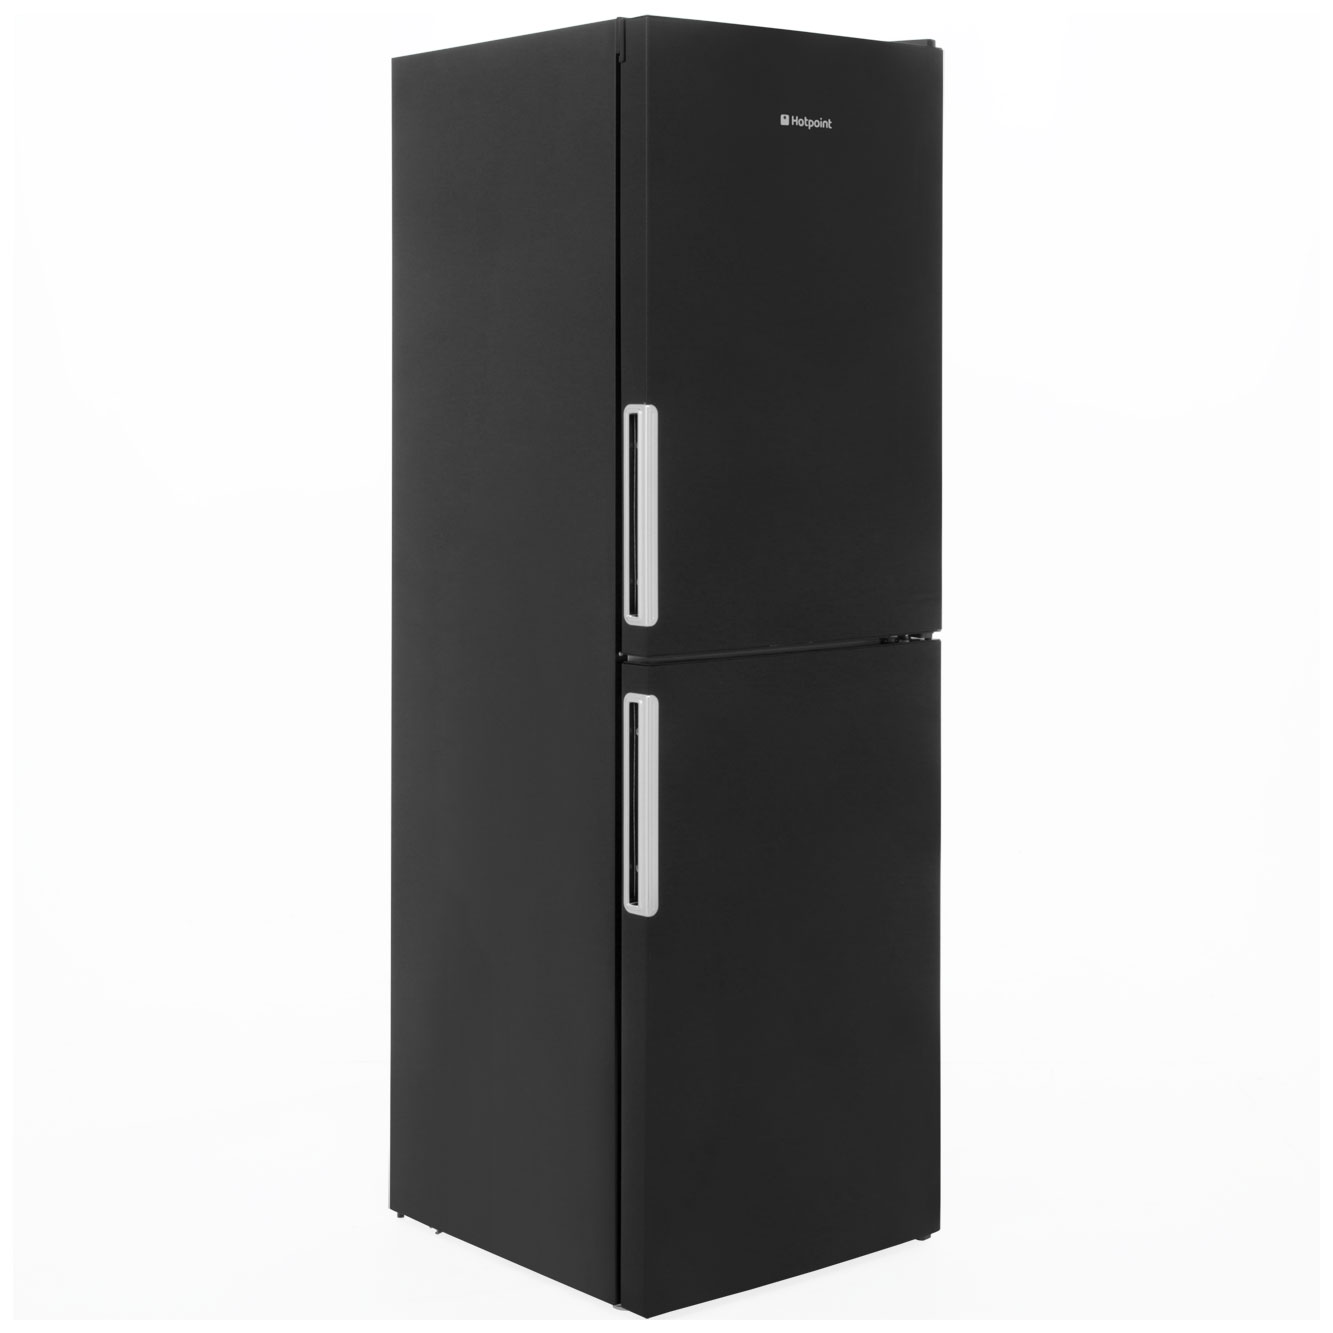 Hotpoint XAO85TIK 50/50 Frost Free Fridge Freezer - Black